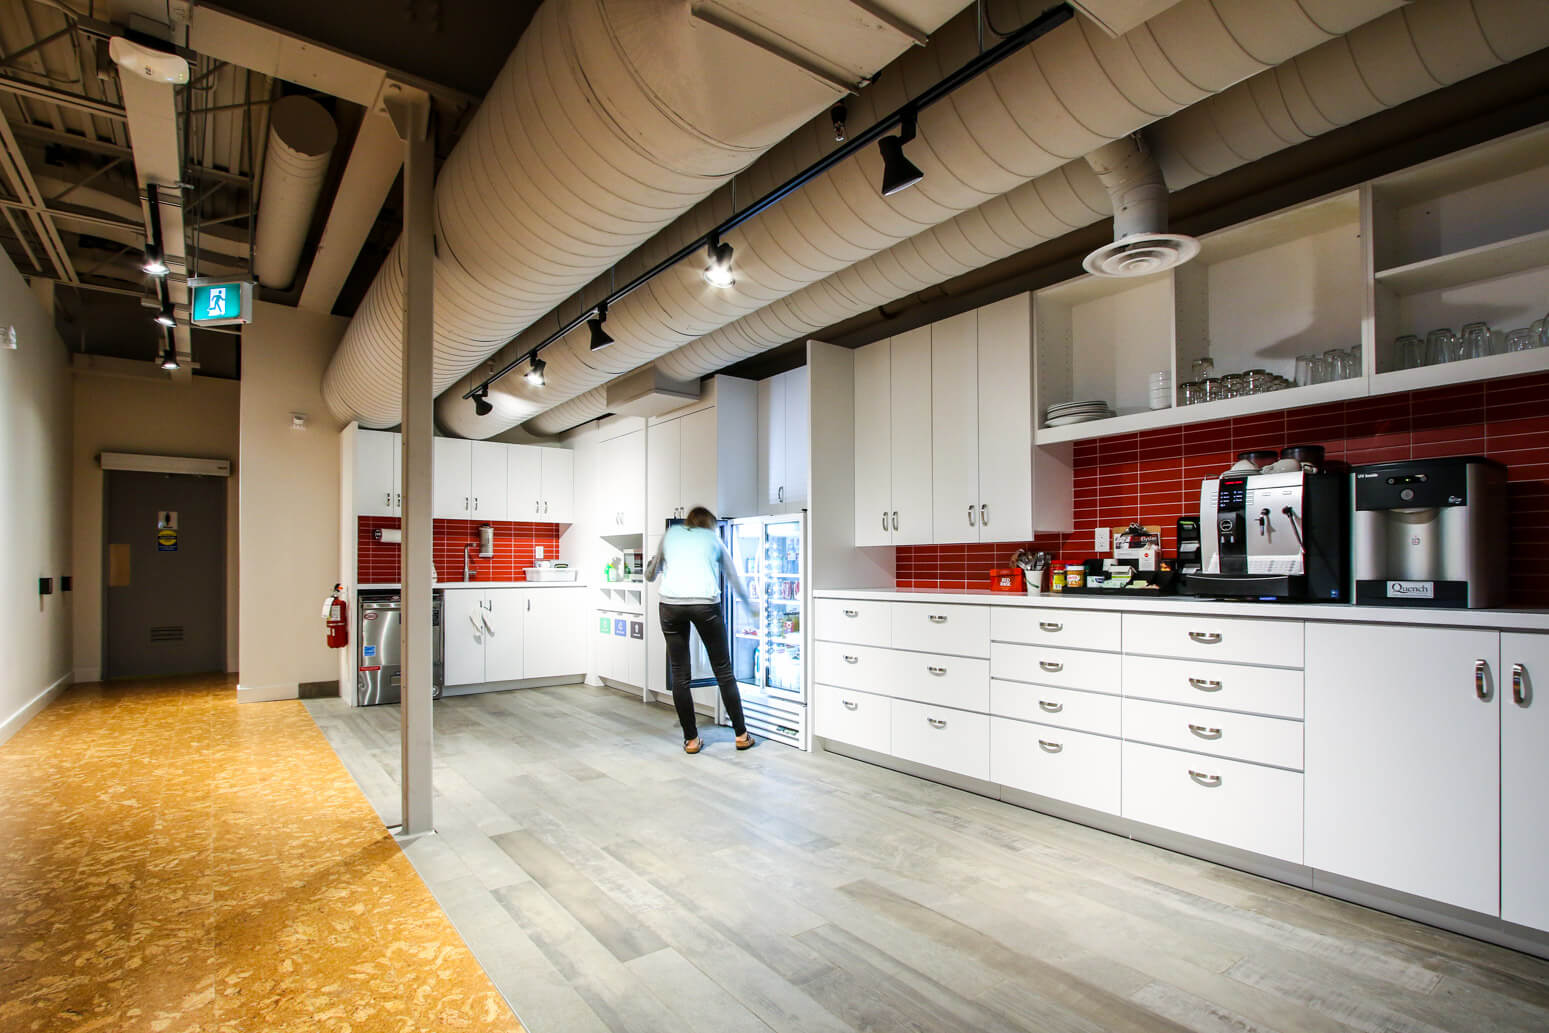 Shopify Waterloo Office Killer Spaces-18